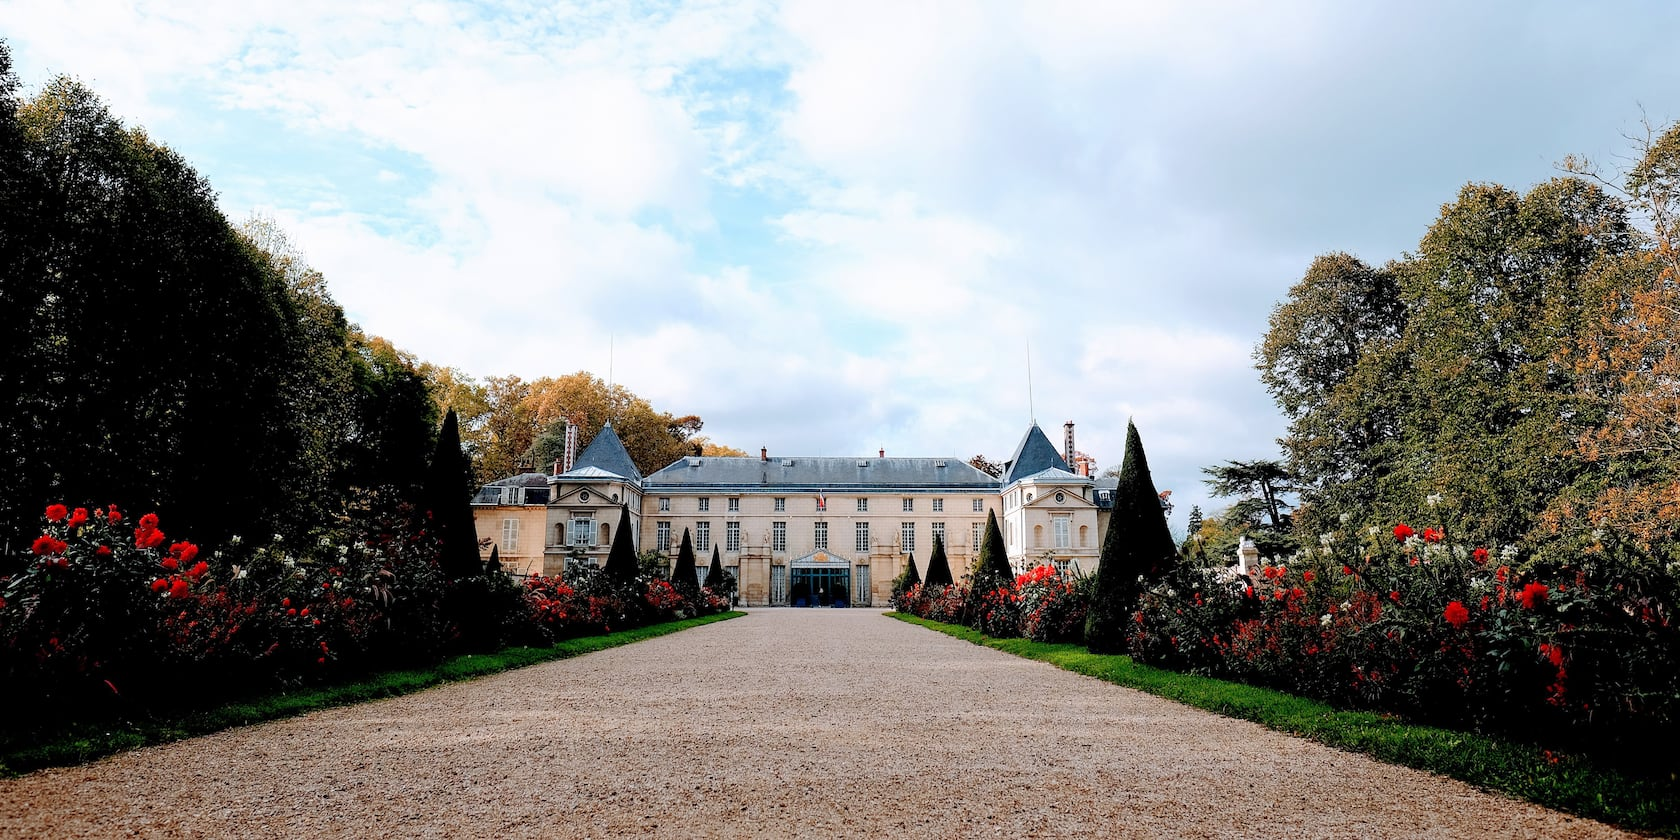 A long, tree-lined driveway leads to Chateau Malmaison in Conflans, France